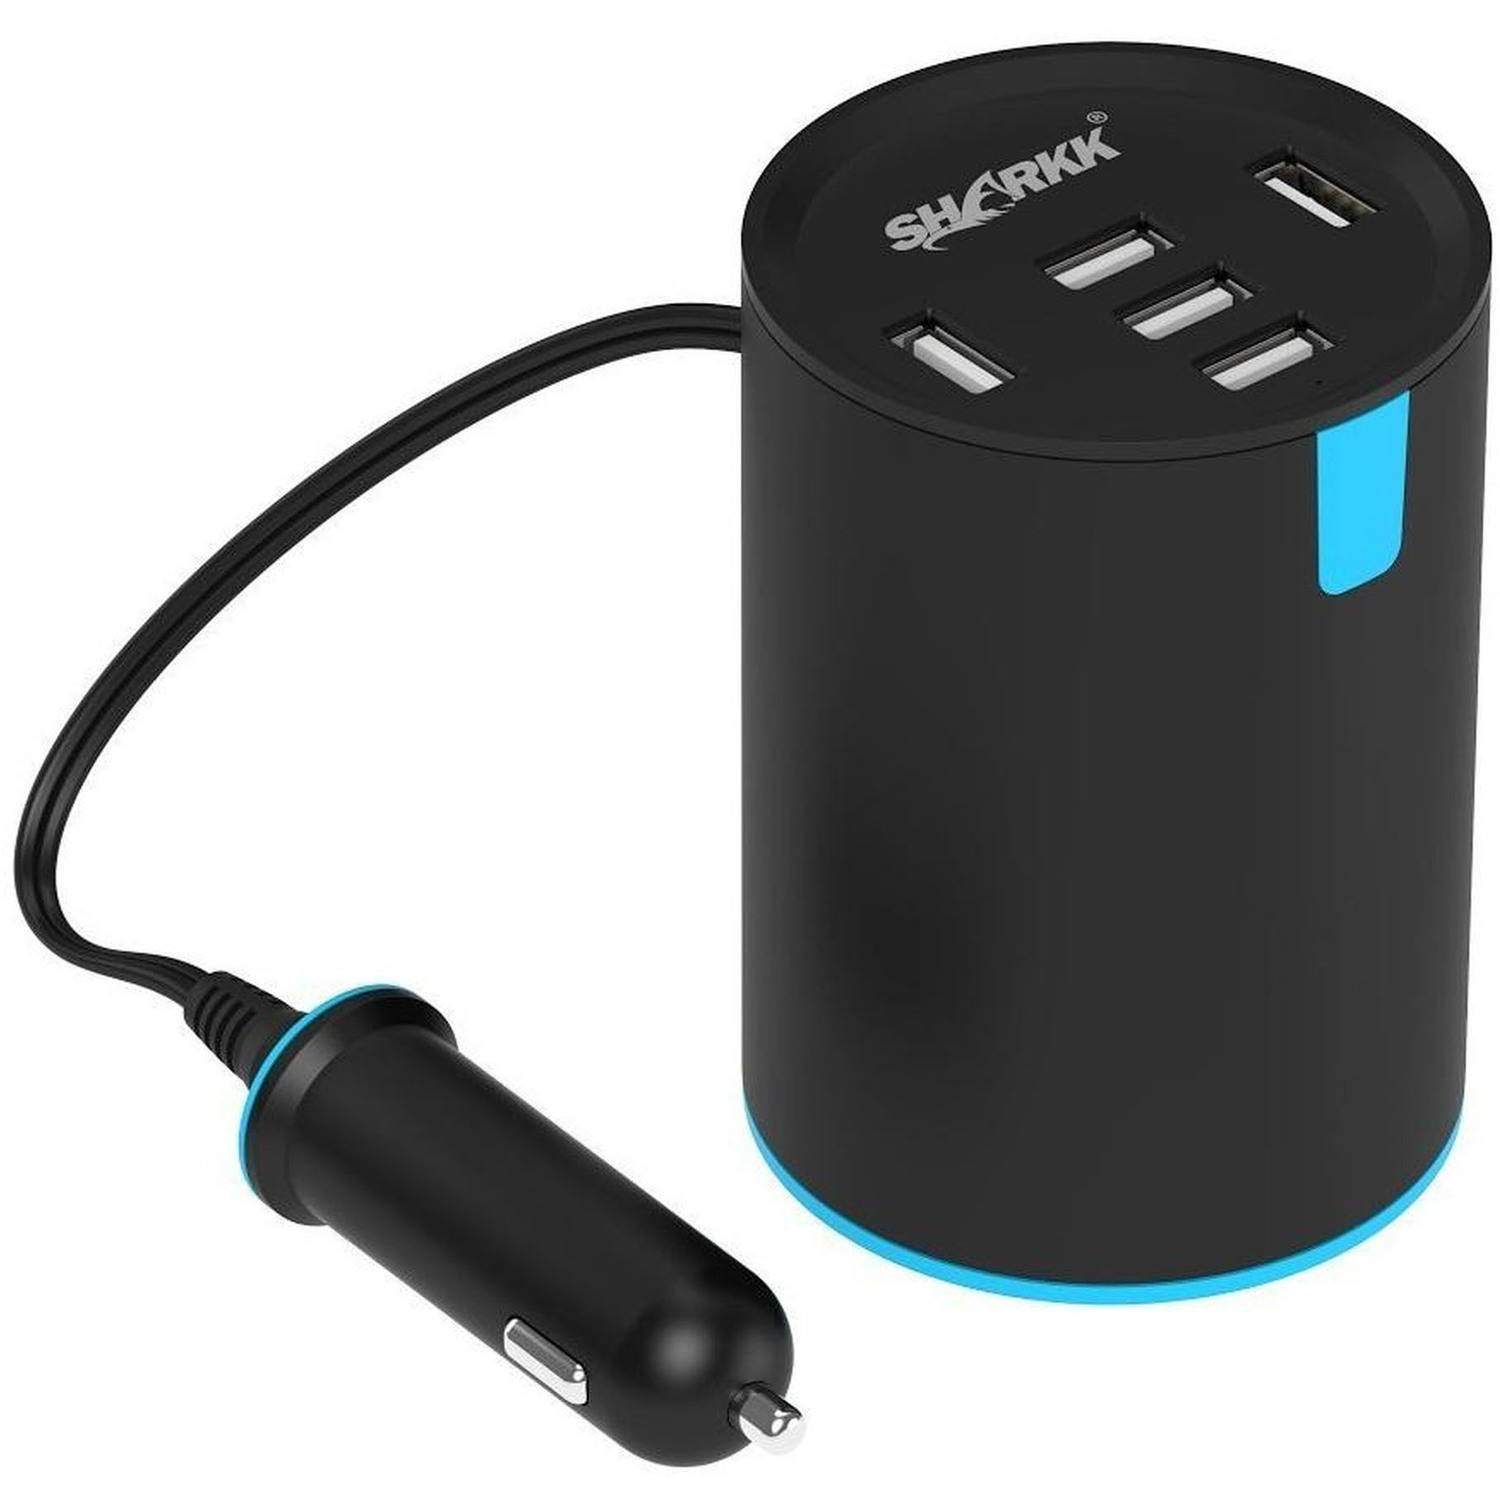 Sharkk 5-Port High-Speed Car Charger with Retractable Power Plug